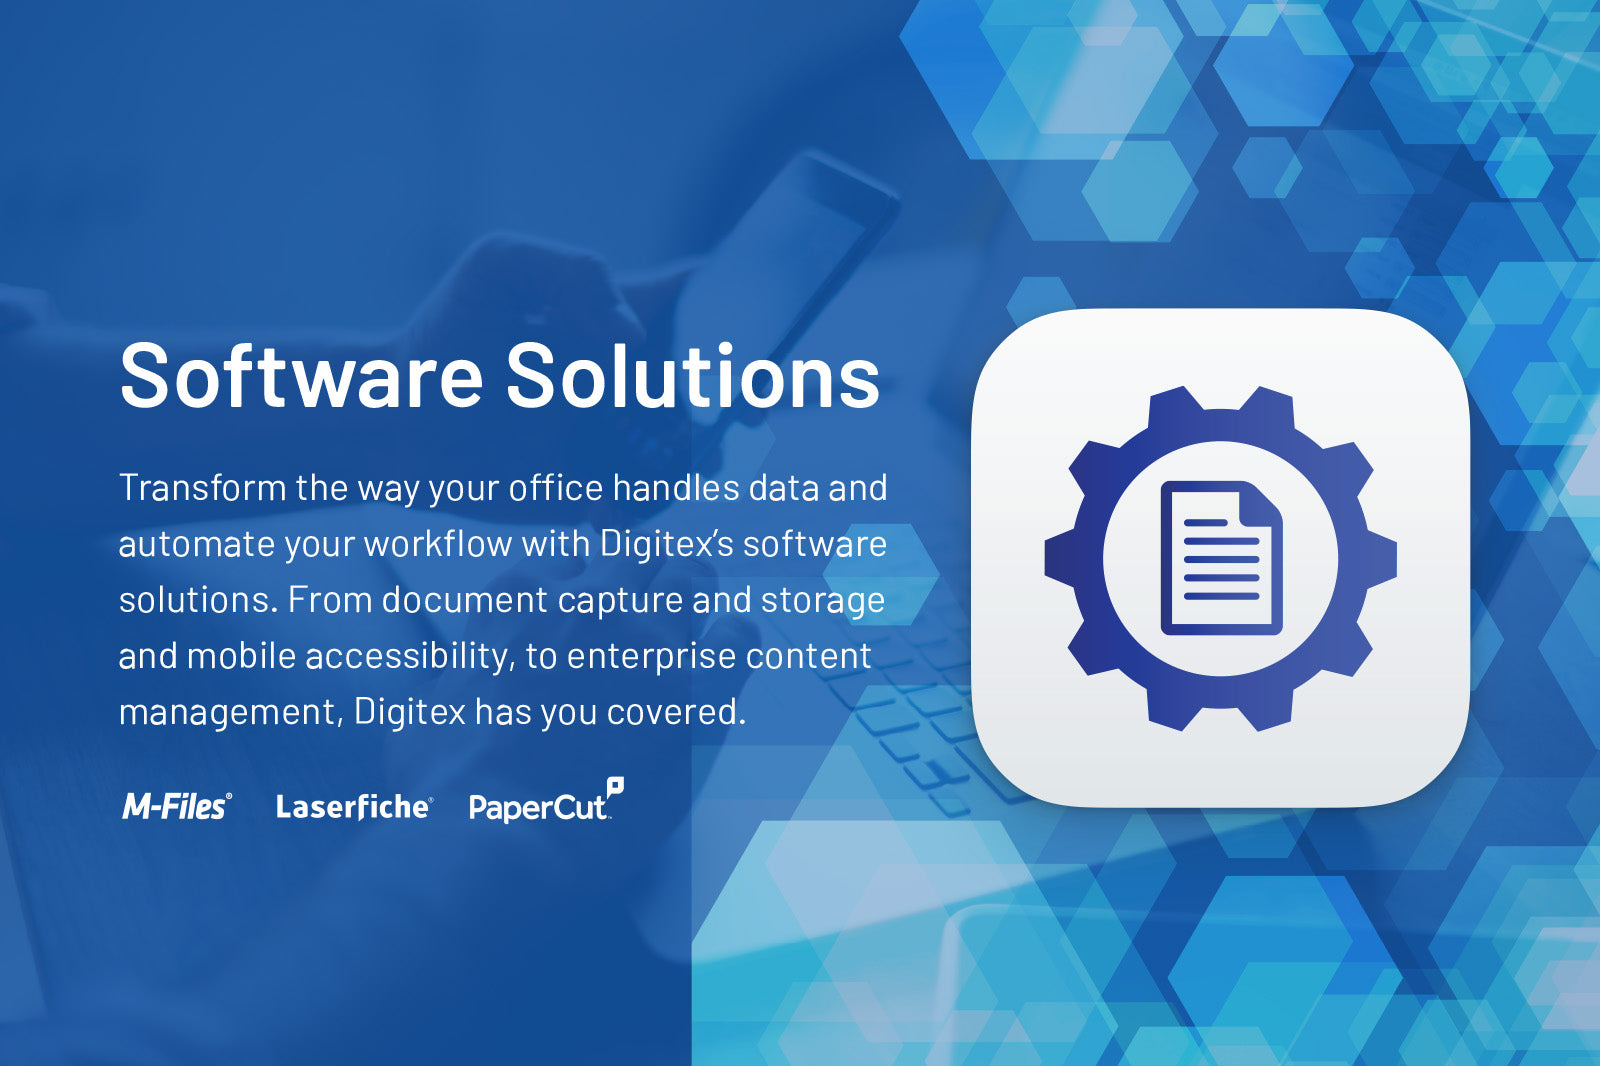 Software Solutions. Transform the way your office handles data and automate your workflow with Digitex's software solutions. From document capture and storage and mobile accessibility, to enterprise content management, Digitex has you covered.